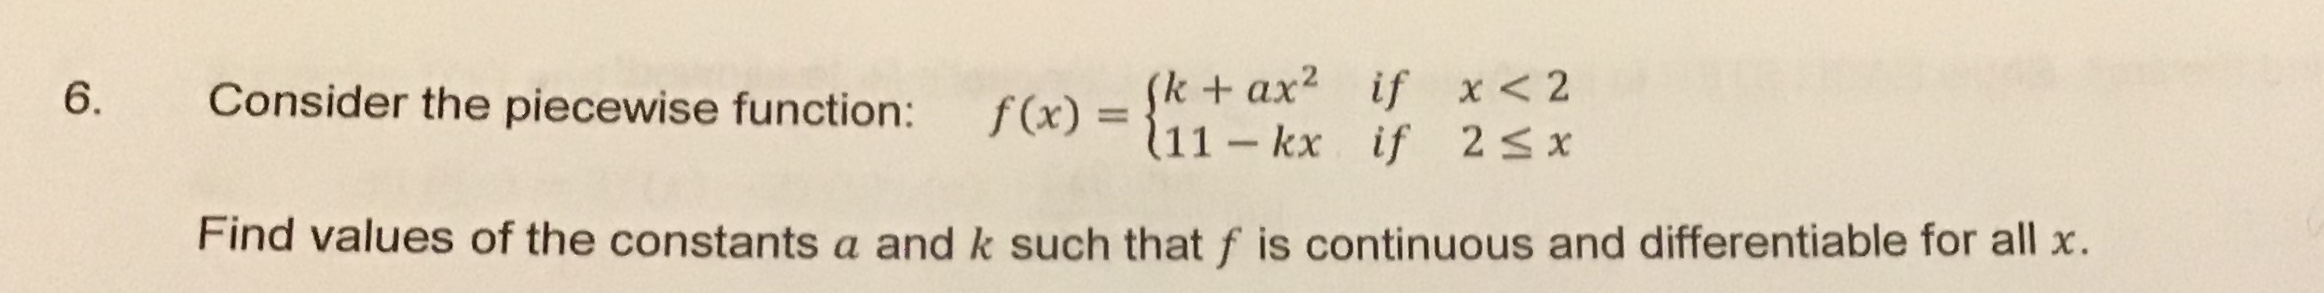 (kax if x<2 f(x)=11- kx if 2s x Consider the piecewise function: 6. Find values of the constants a and k such that f is continuous and differentiable for all x.